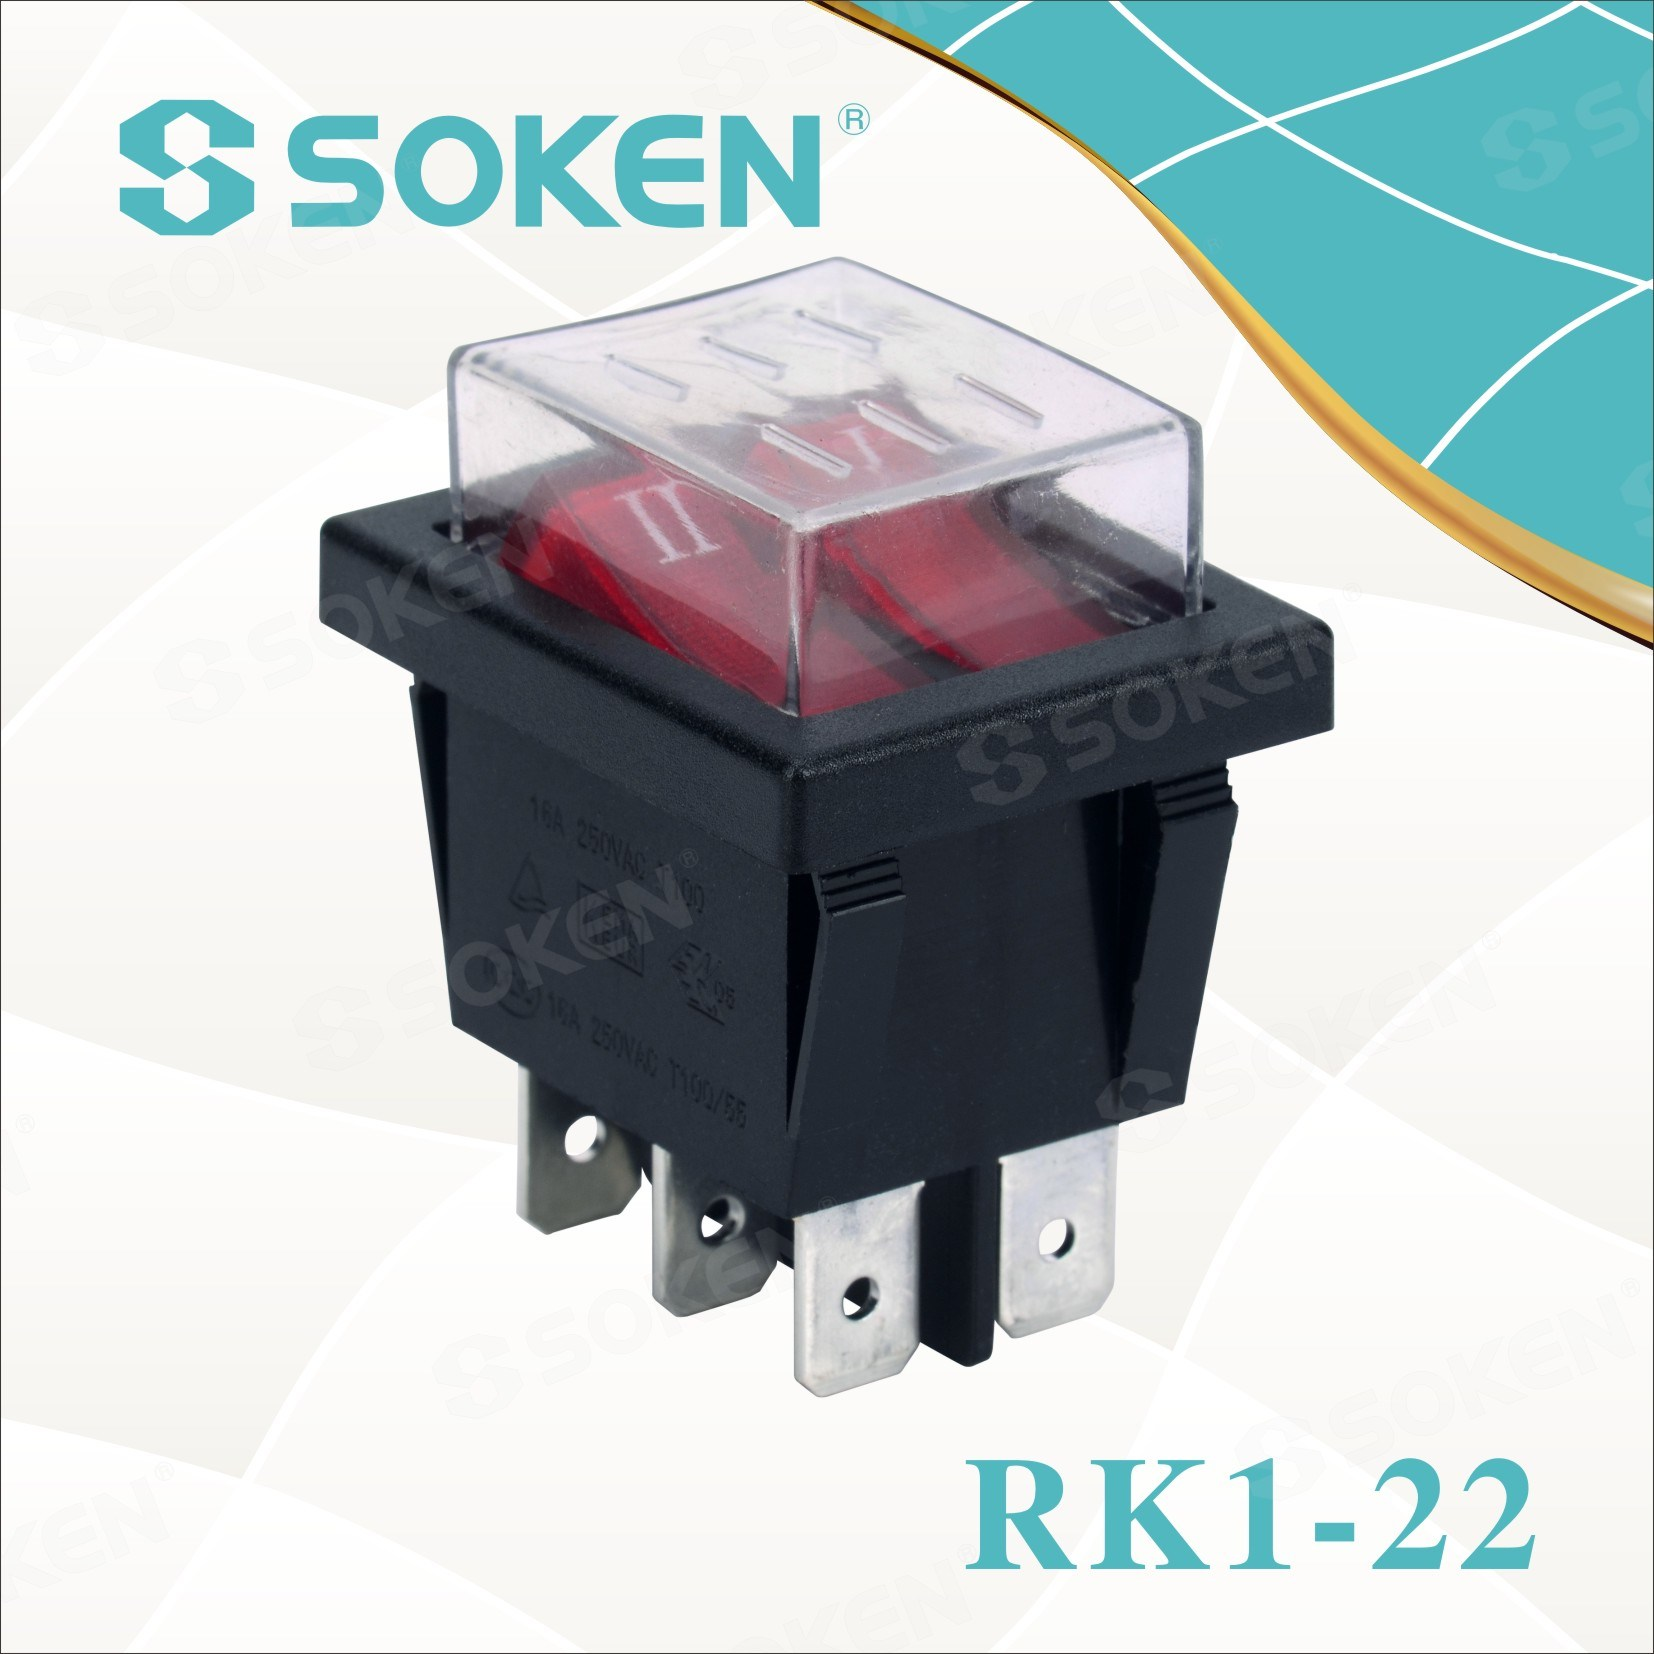 Soken Rk1-22 1X1X2n aan uit Waterproof Illuminated Double Rocker Switch